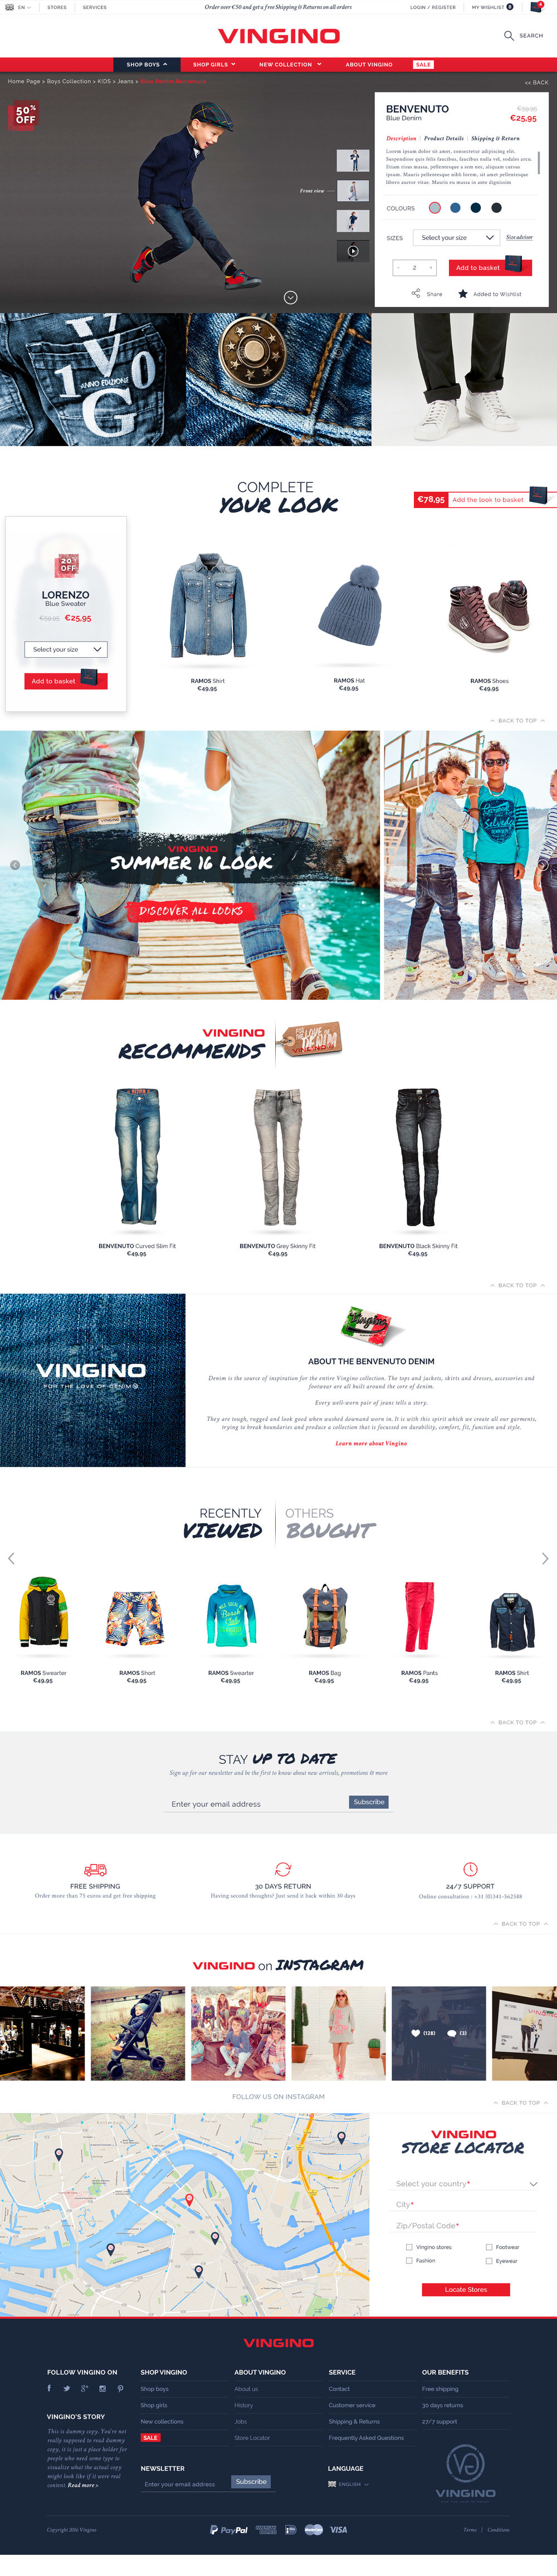 04-_-Product-Page---Boys---Vingino---Desktop.jpg